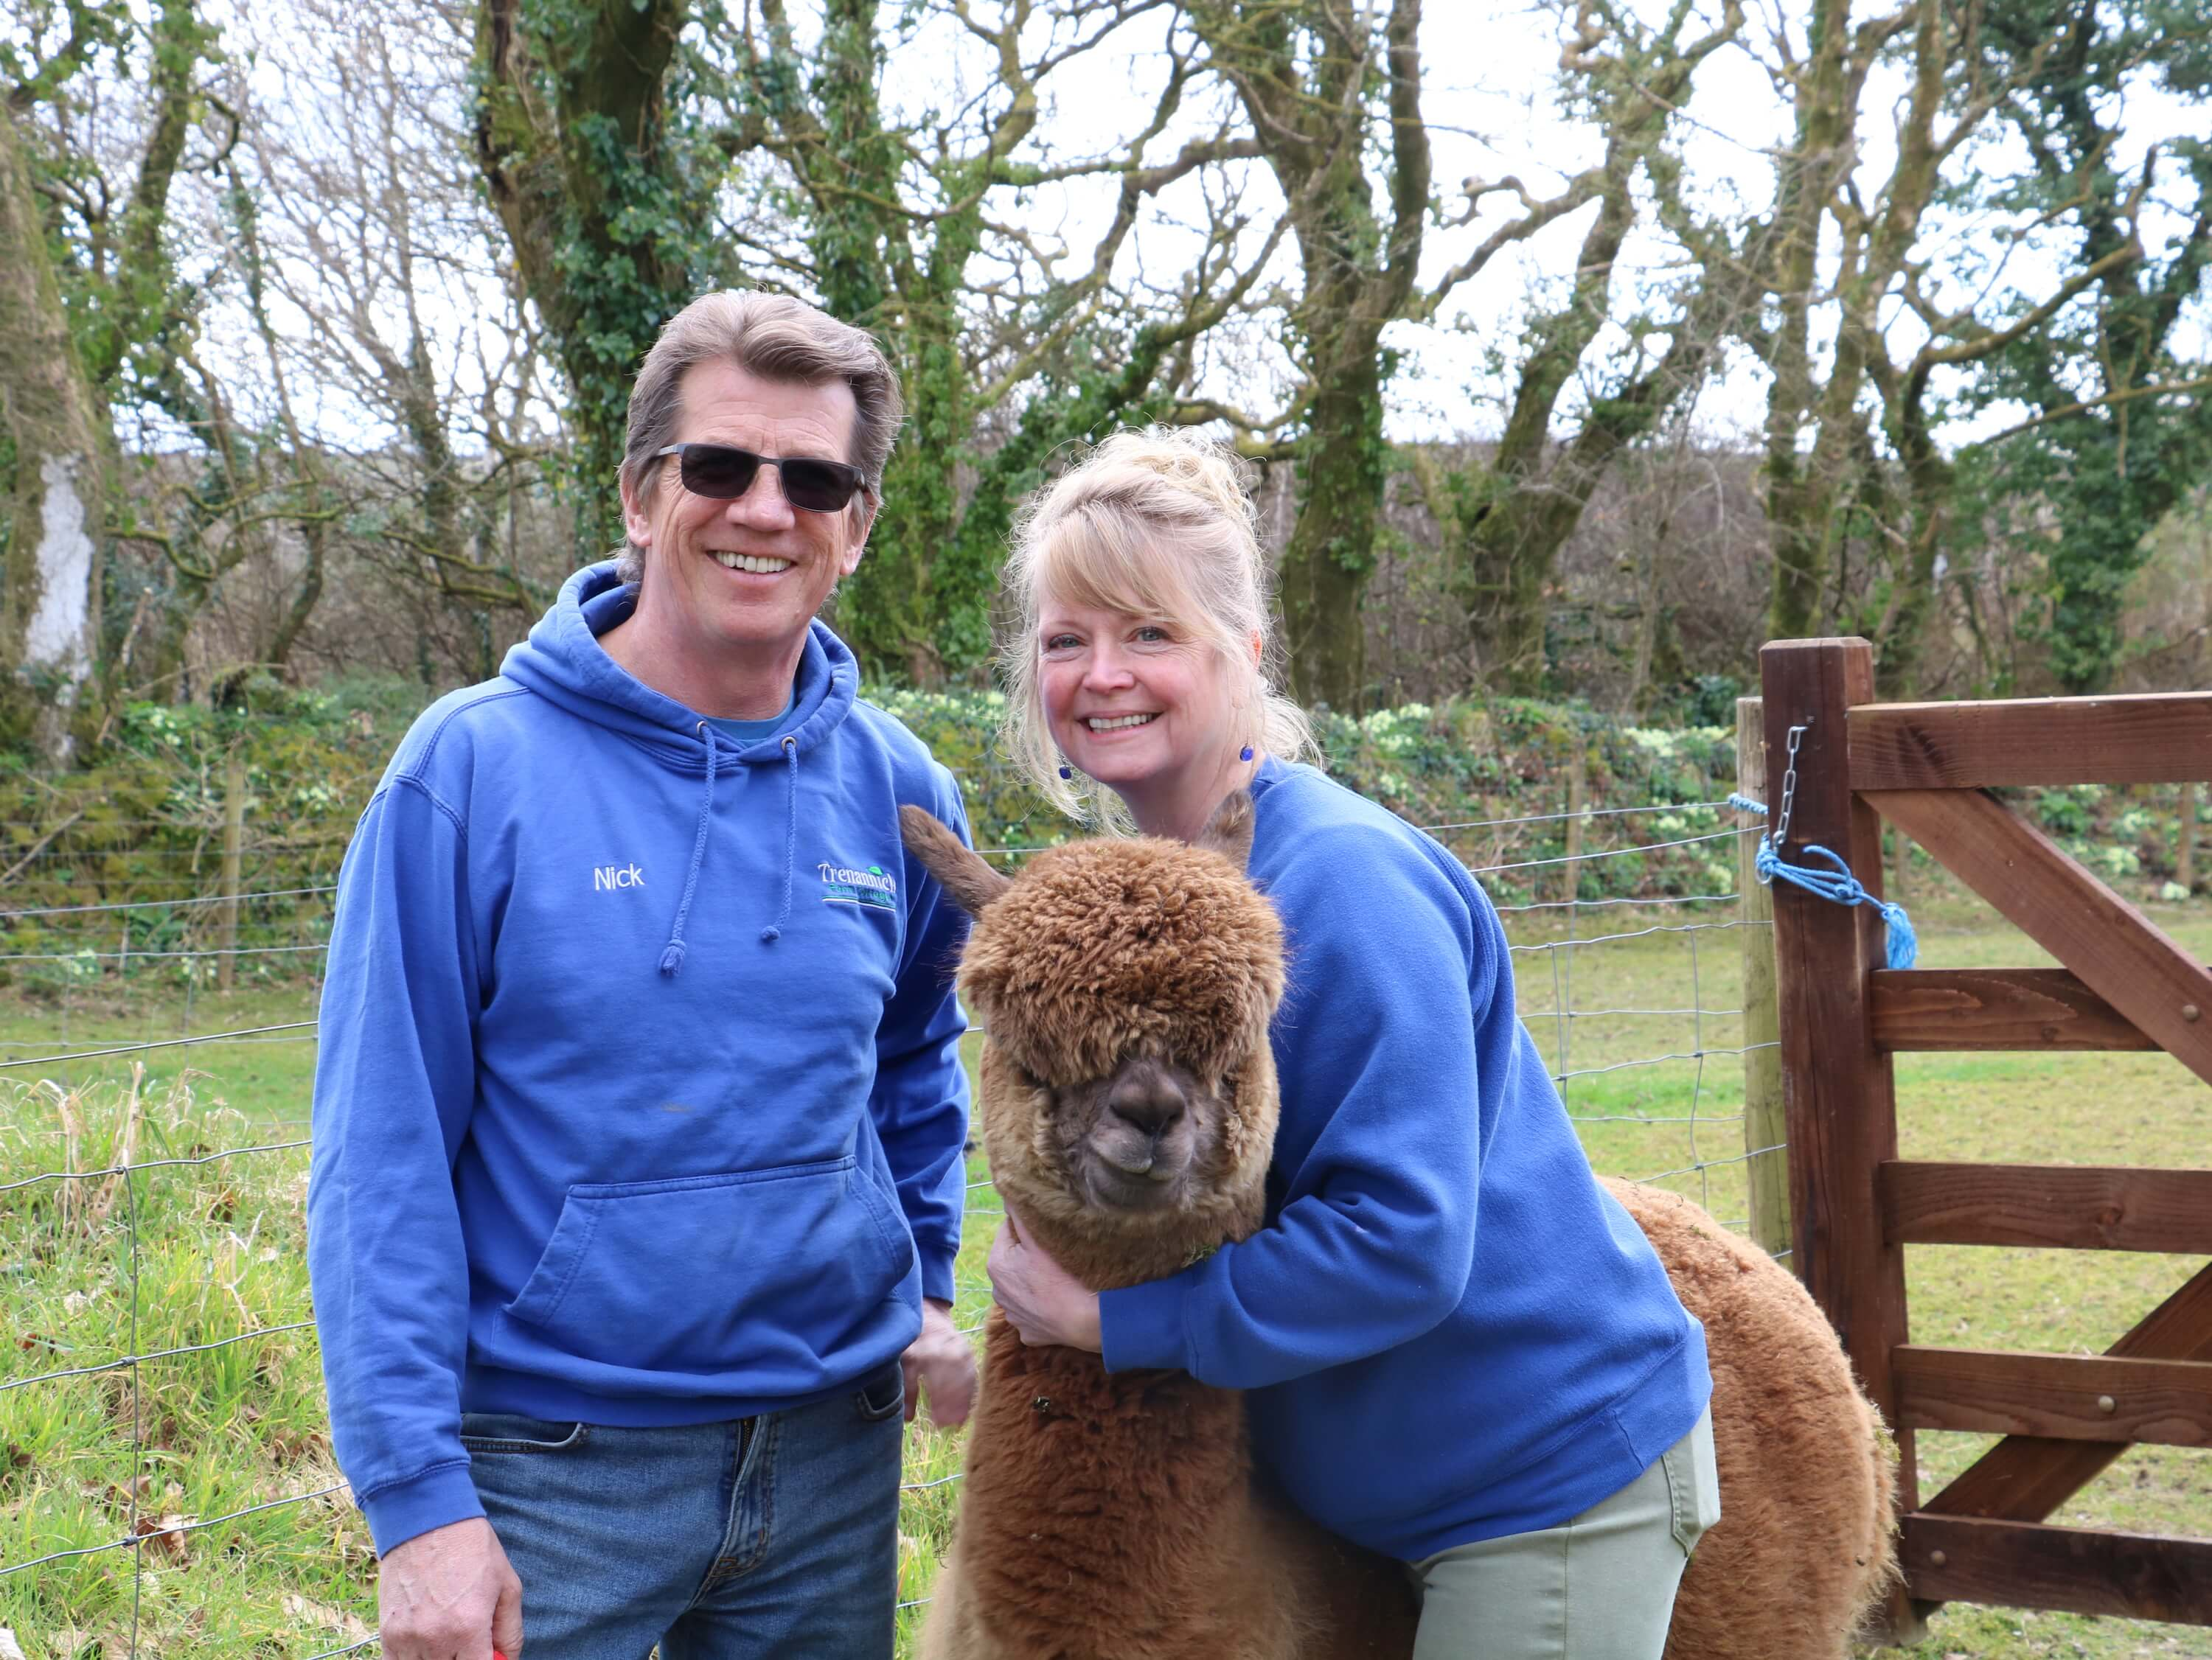 Meet the owners - with their alpacas